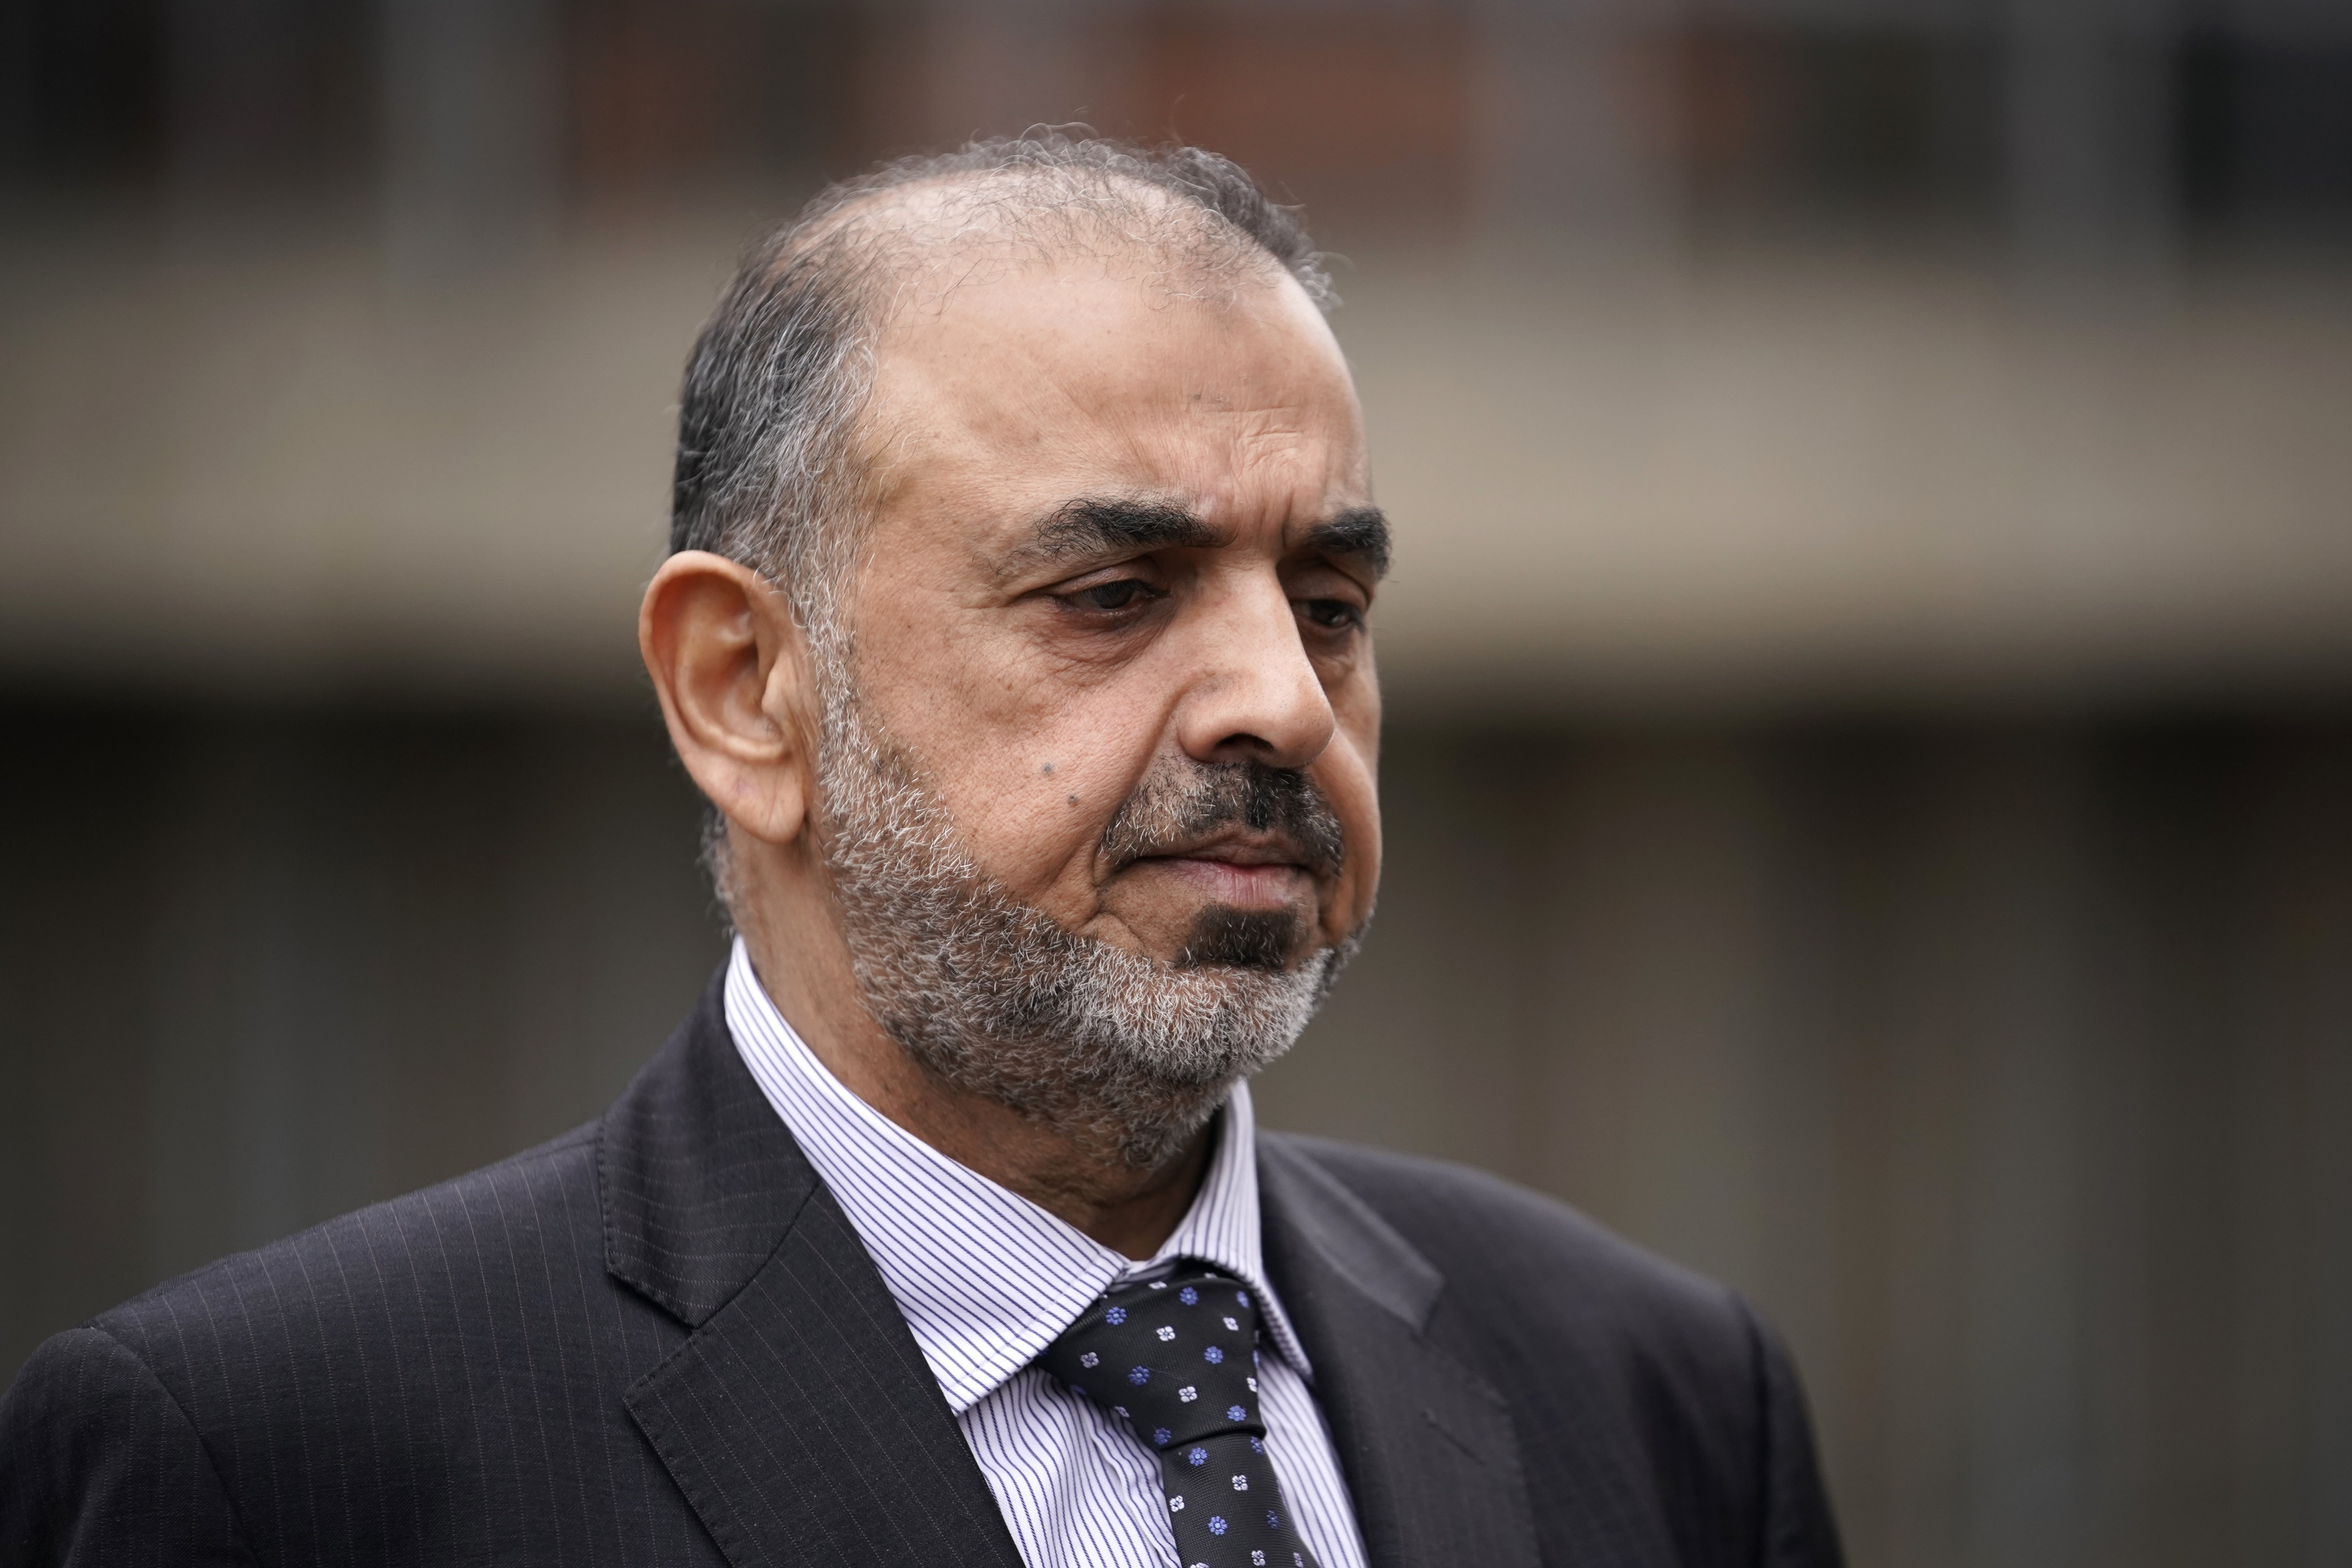 Lord Nazir Ahmed is accused of two counts of attempting to rape a girl and  indecent assault of a boy under 13, alleged to have taken place between 1971 and 1974 (Photo by Christopher Furlong/Getty Images)